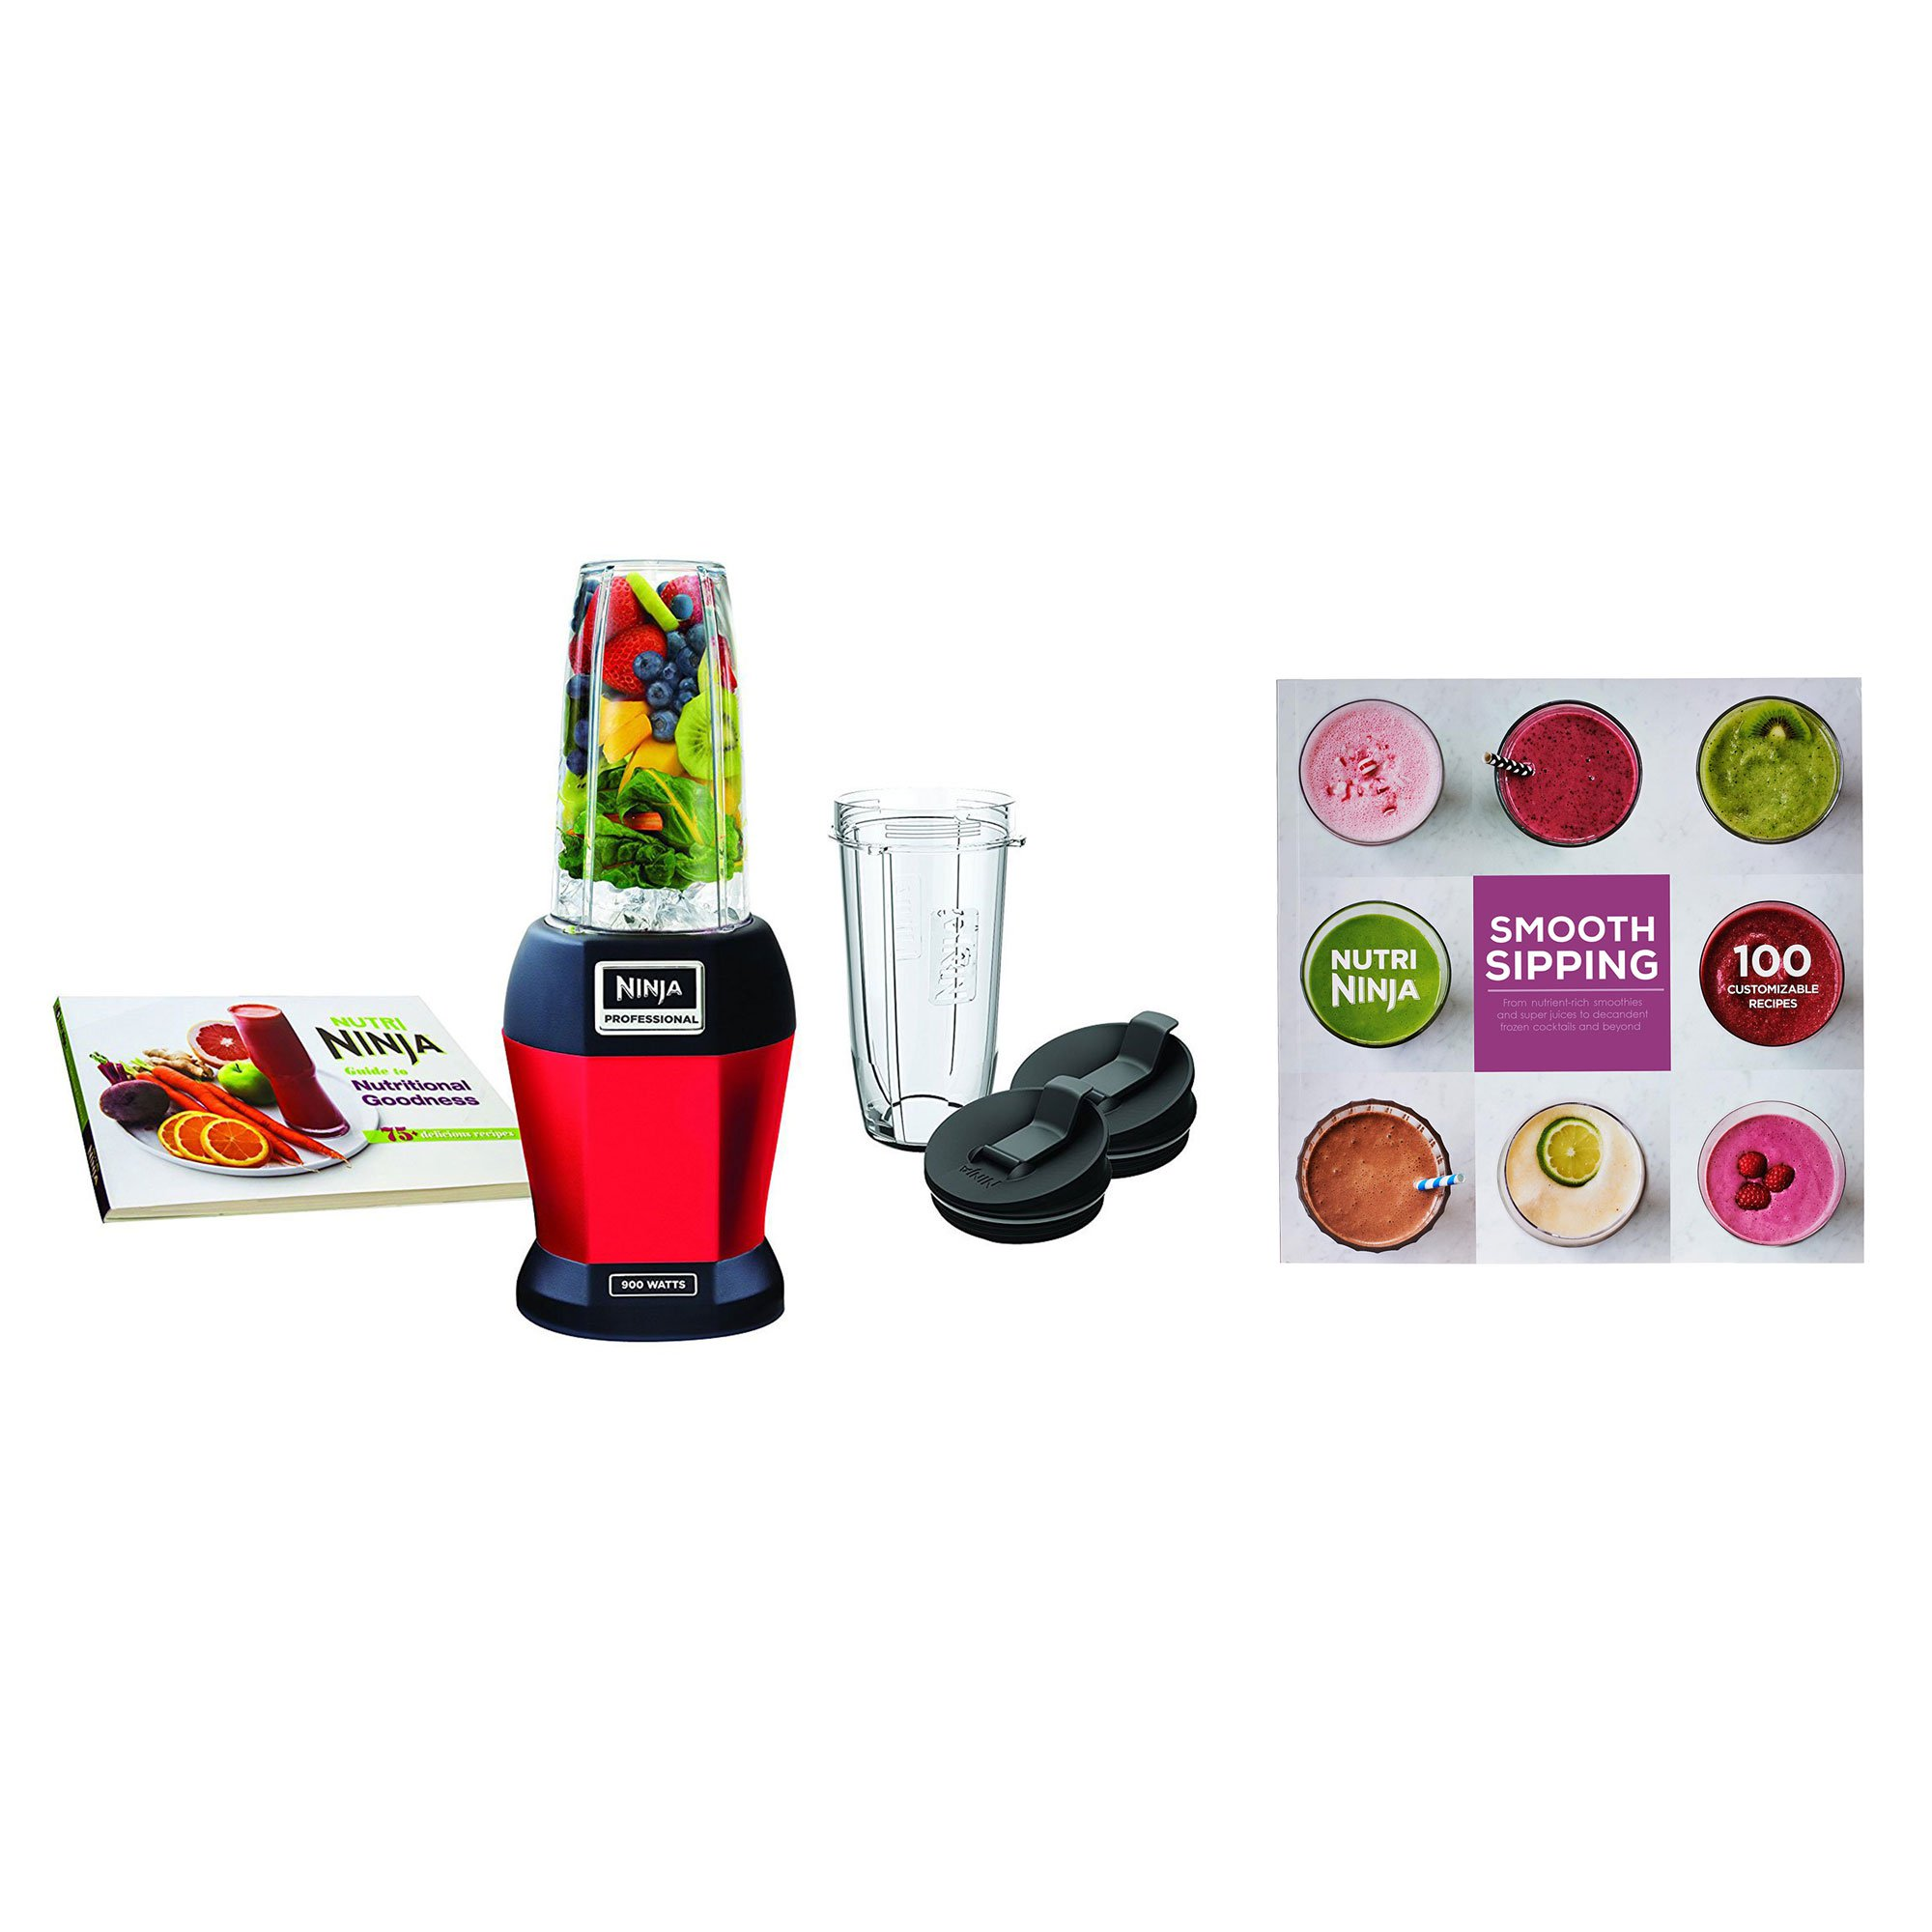 Nutri Ninja BL456 900W Professional Smoothie Blender w/ Cups, Red & 100 Recipes